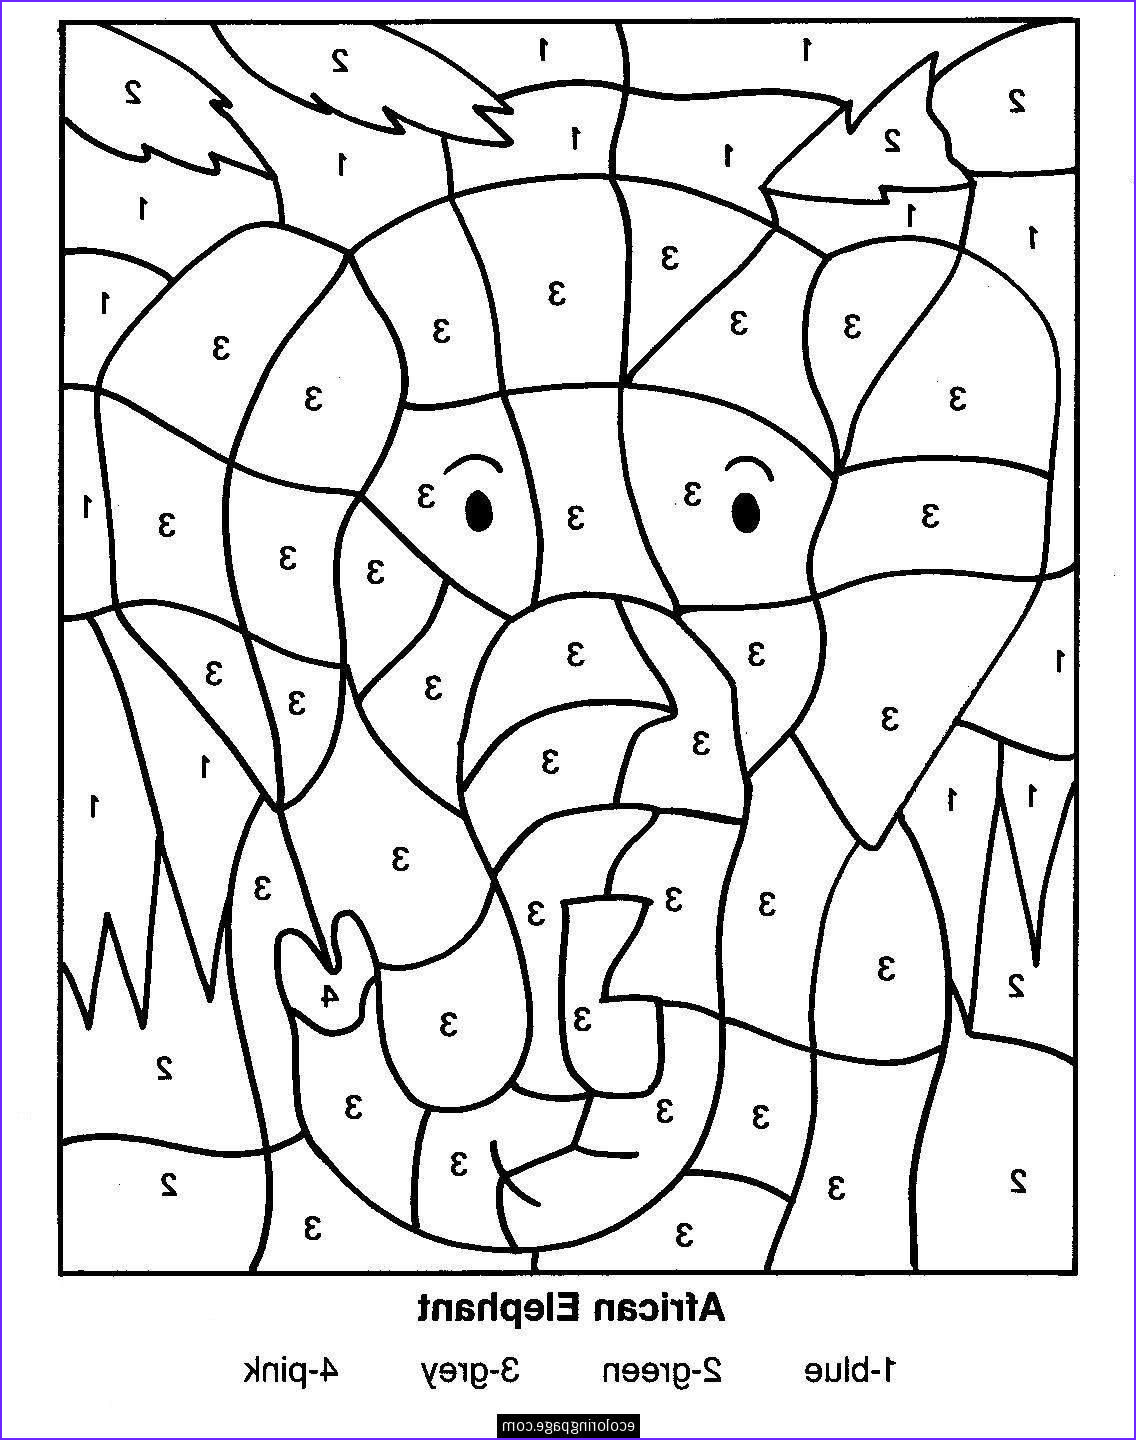 Coloring Pages by Number Best Of Photography Free Printable Color by Number Coloring Pages Best